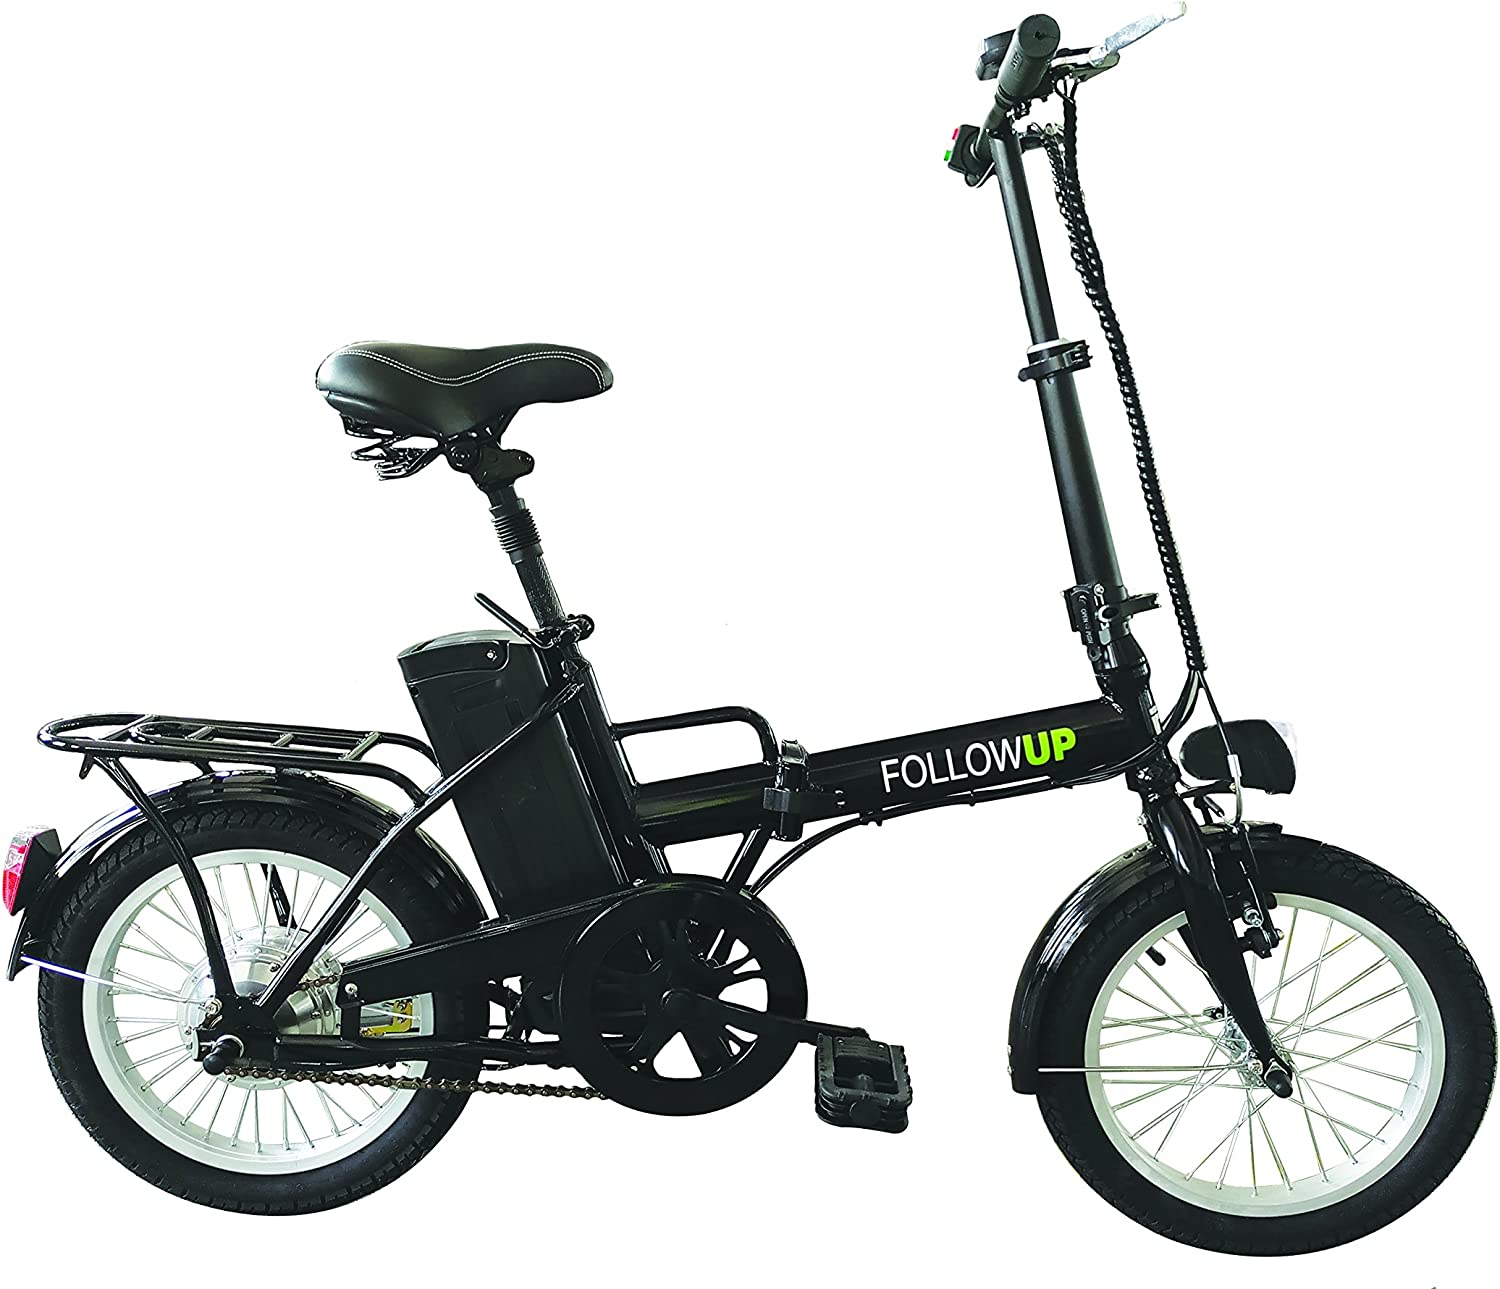 FOLLOW UP E05 Bicicleta eléctrica Plegable para Adulto, Color Negro: Amazon.es: Deportes y aire libre